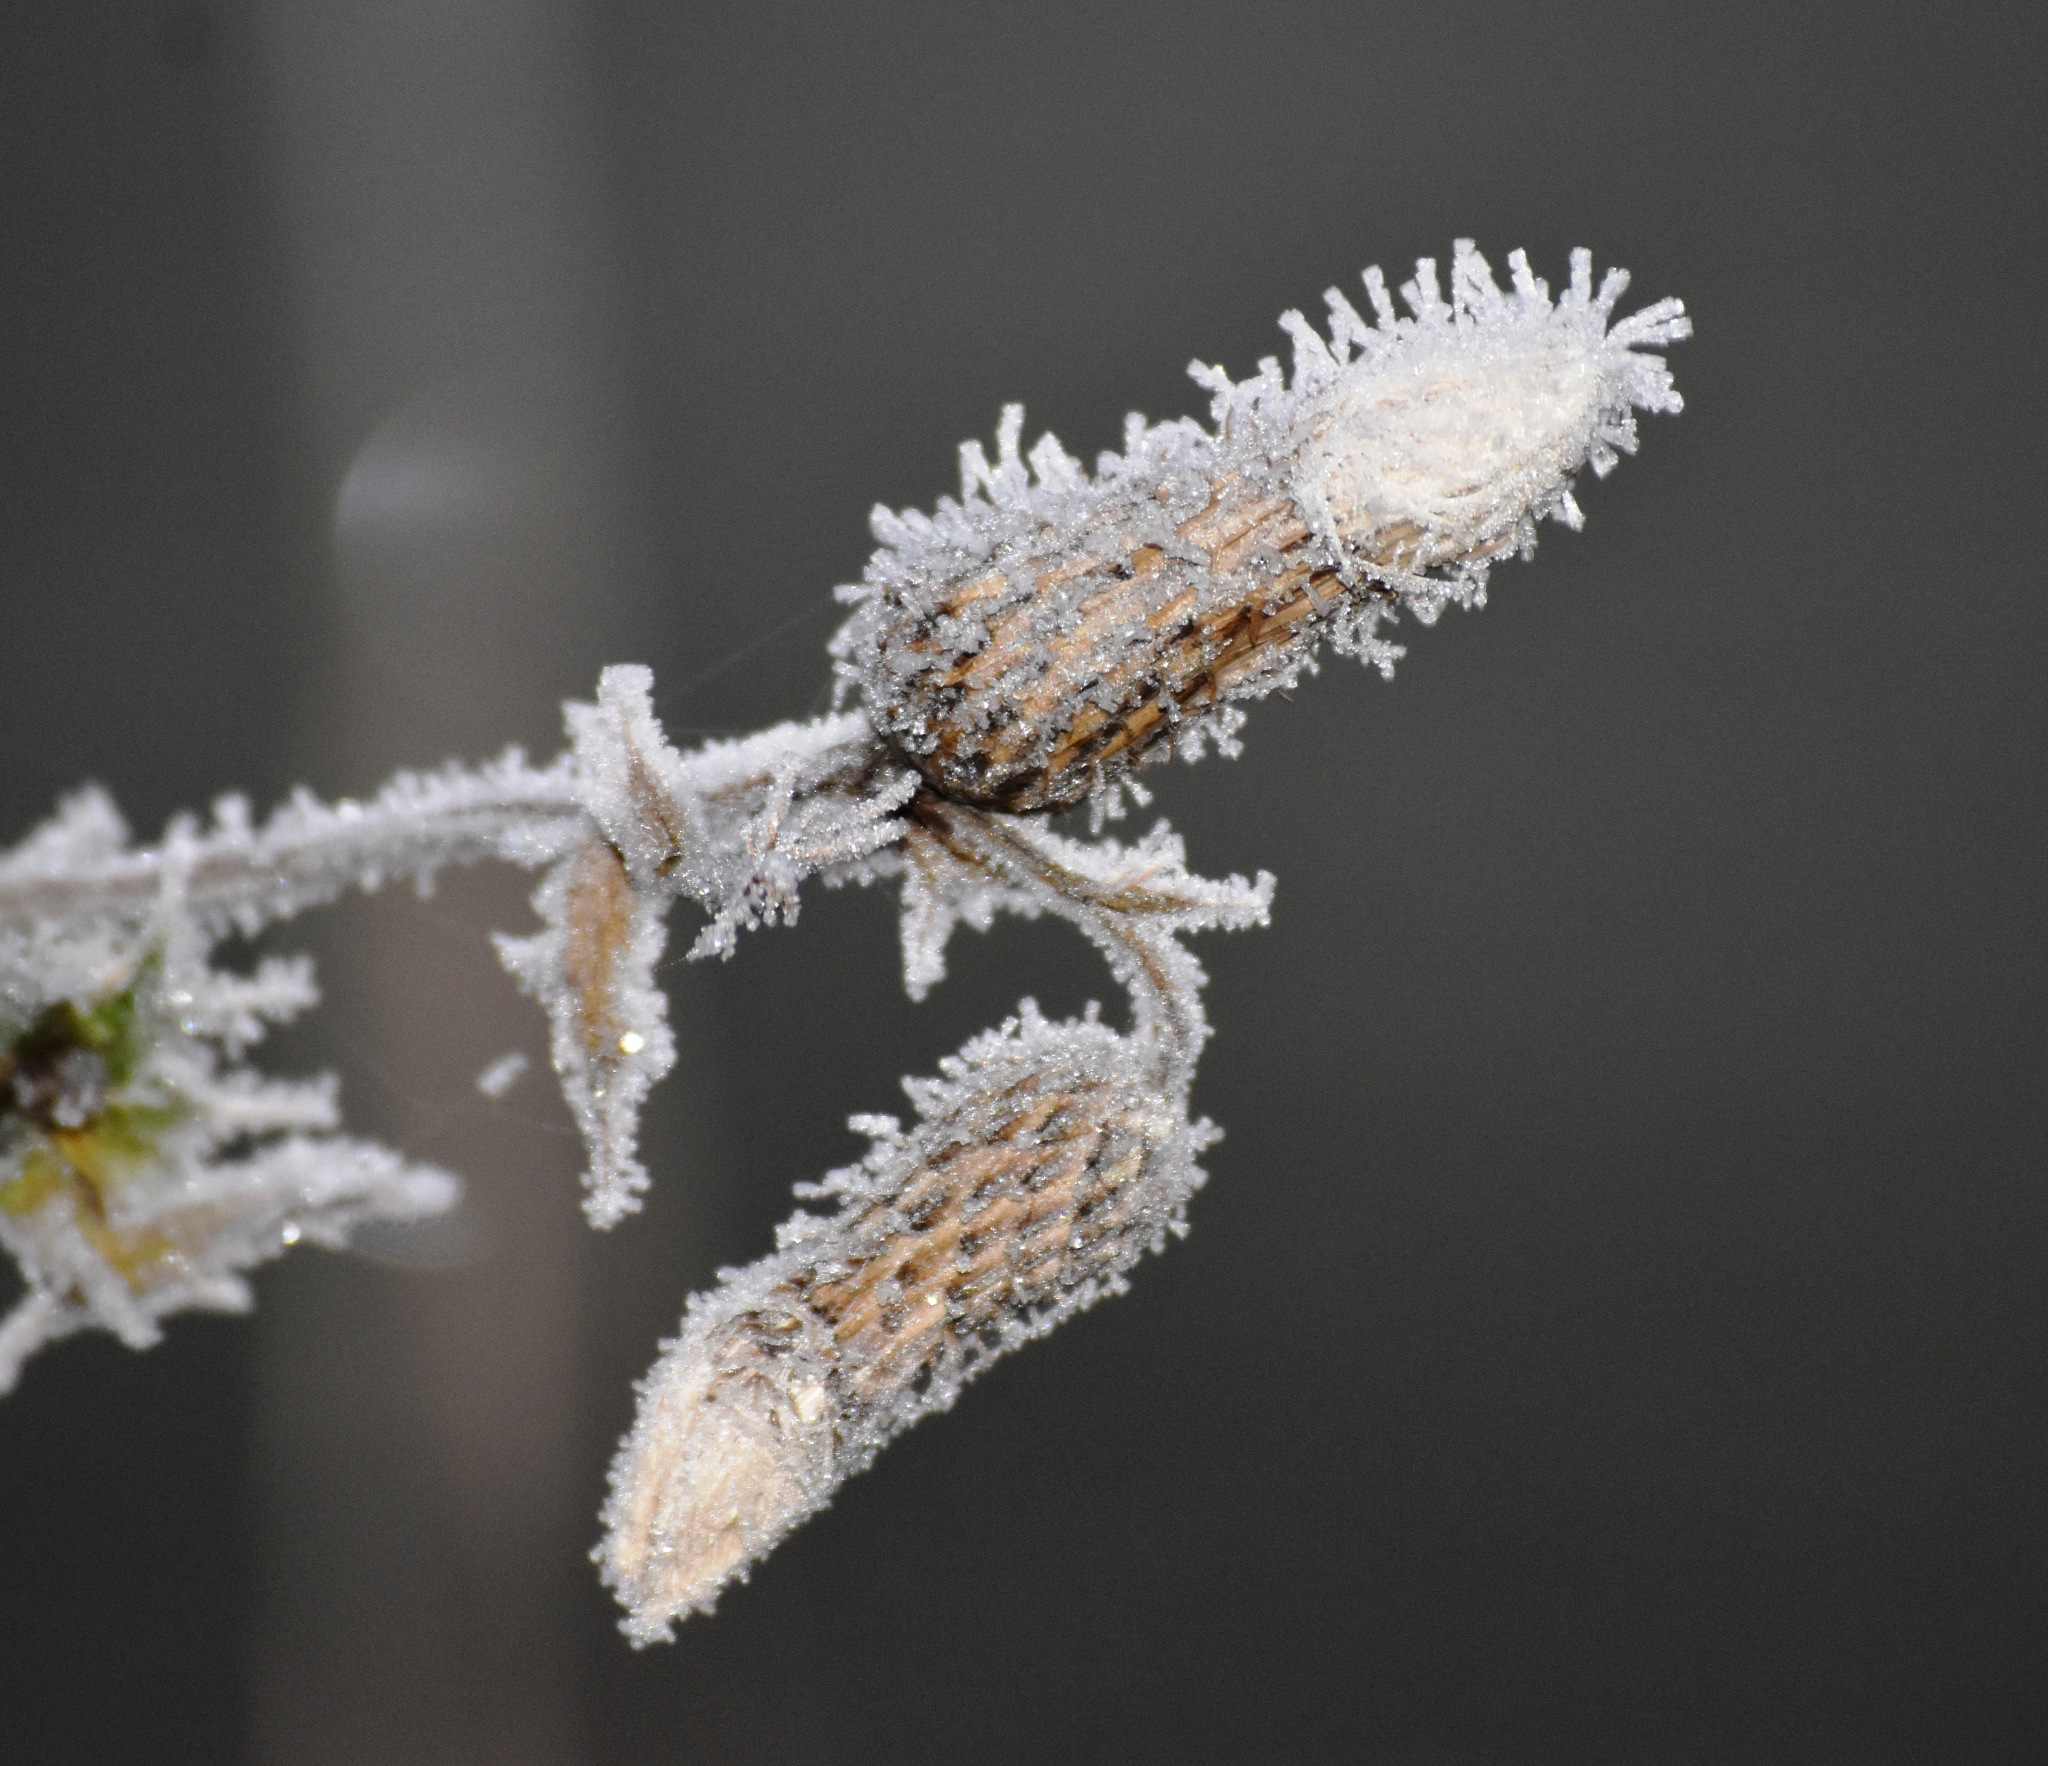 It's cold says the plant!! by Stephen Ashdown